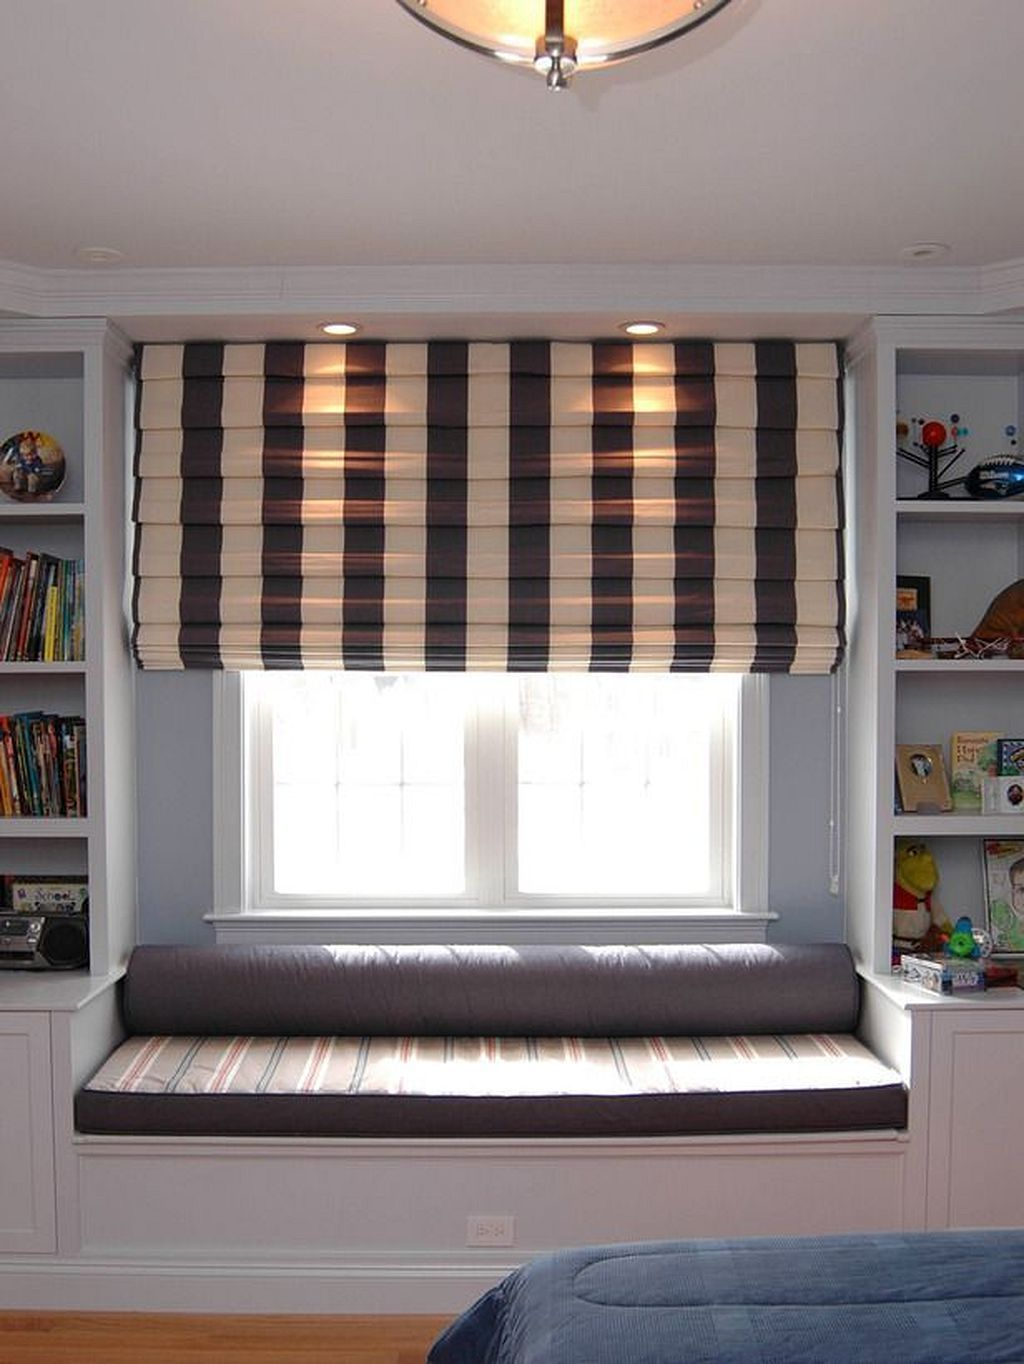 Window seat with bed   cozy nook bed window seat inspiration  cozy nook cozy and window